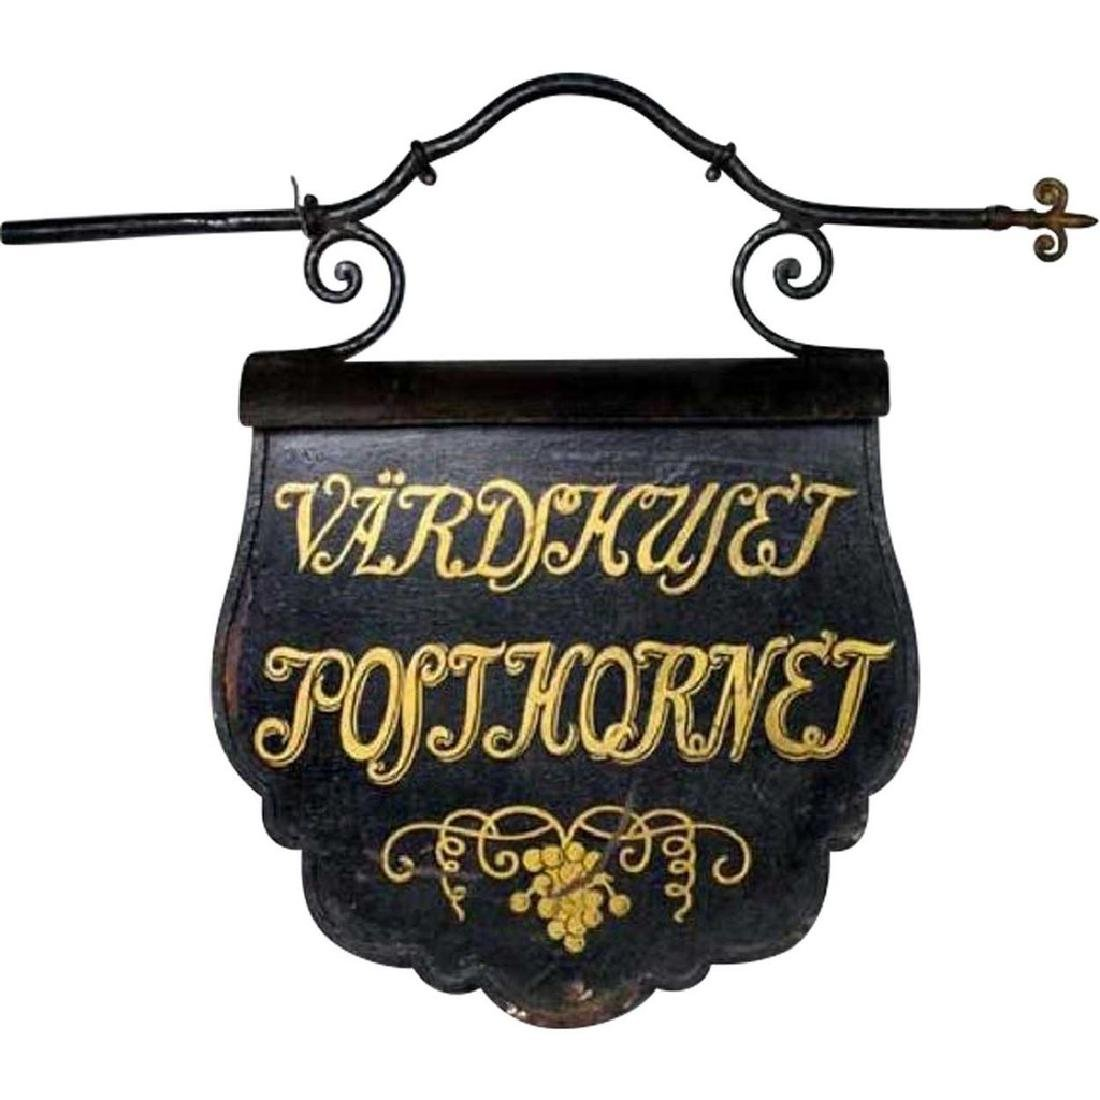 Swedish Painted Iron Hotel Trade Bracket Sign